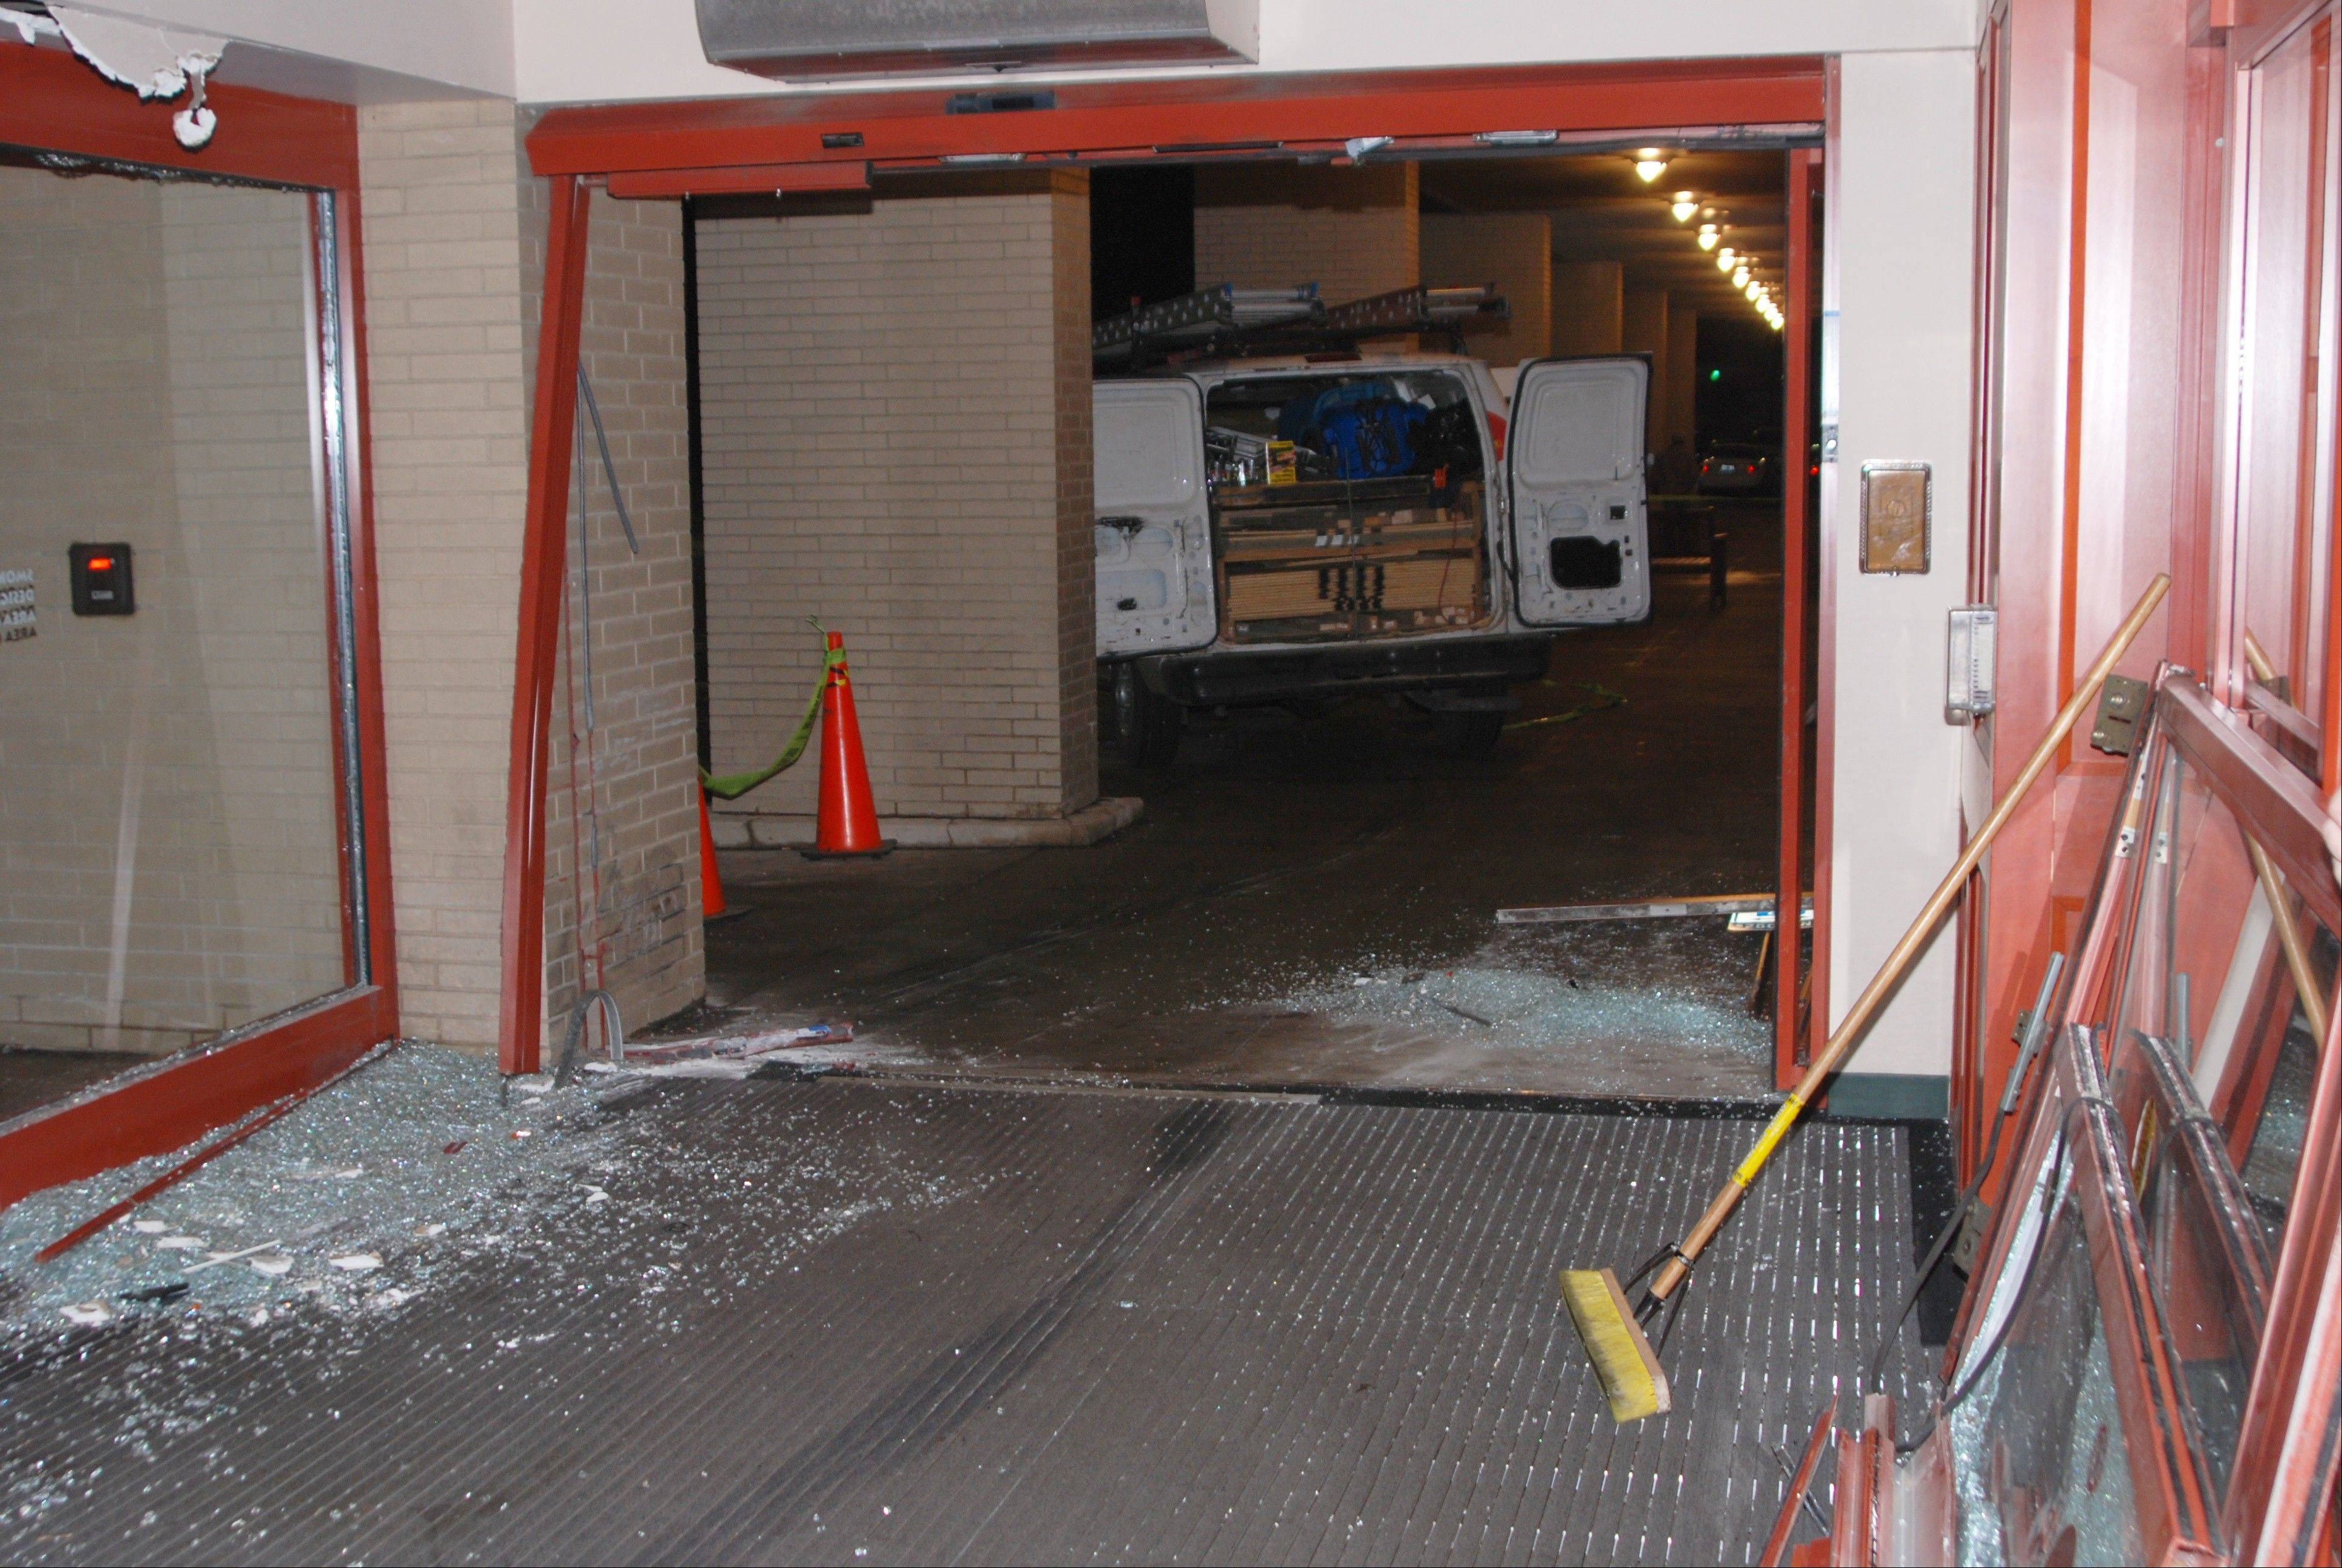 Repairs began Wednesday to the west entrance of the Schaumburg Township District Library building in Schaumburg. The entrance was damaged late Tuesday afternoon when a minivan crashed through the sliding glass doors.